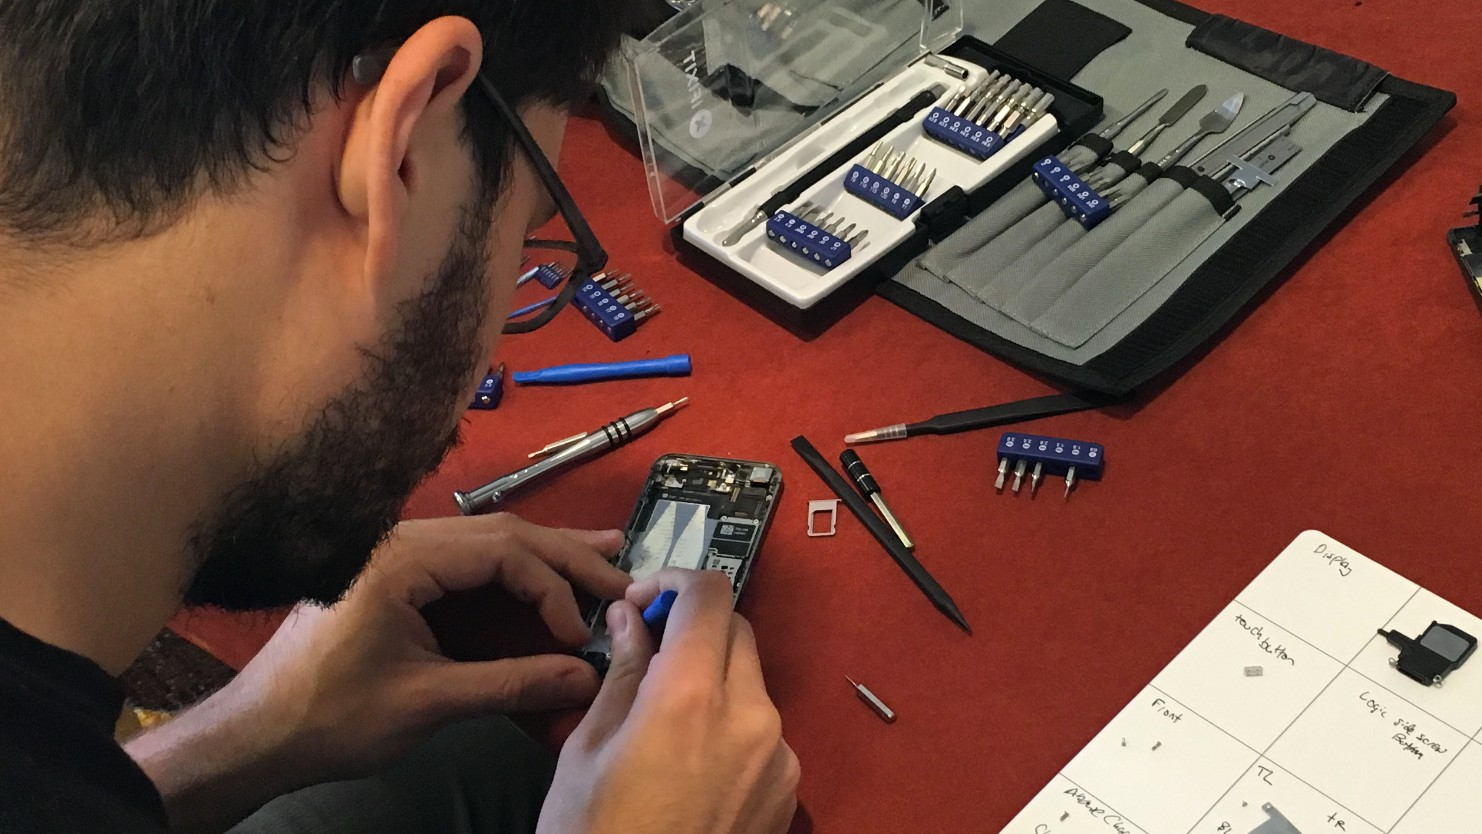 The Best Black Friday Deal: Repairing a Gadget You Already Own